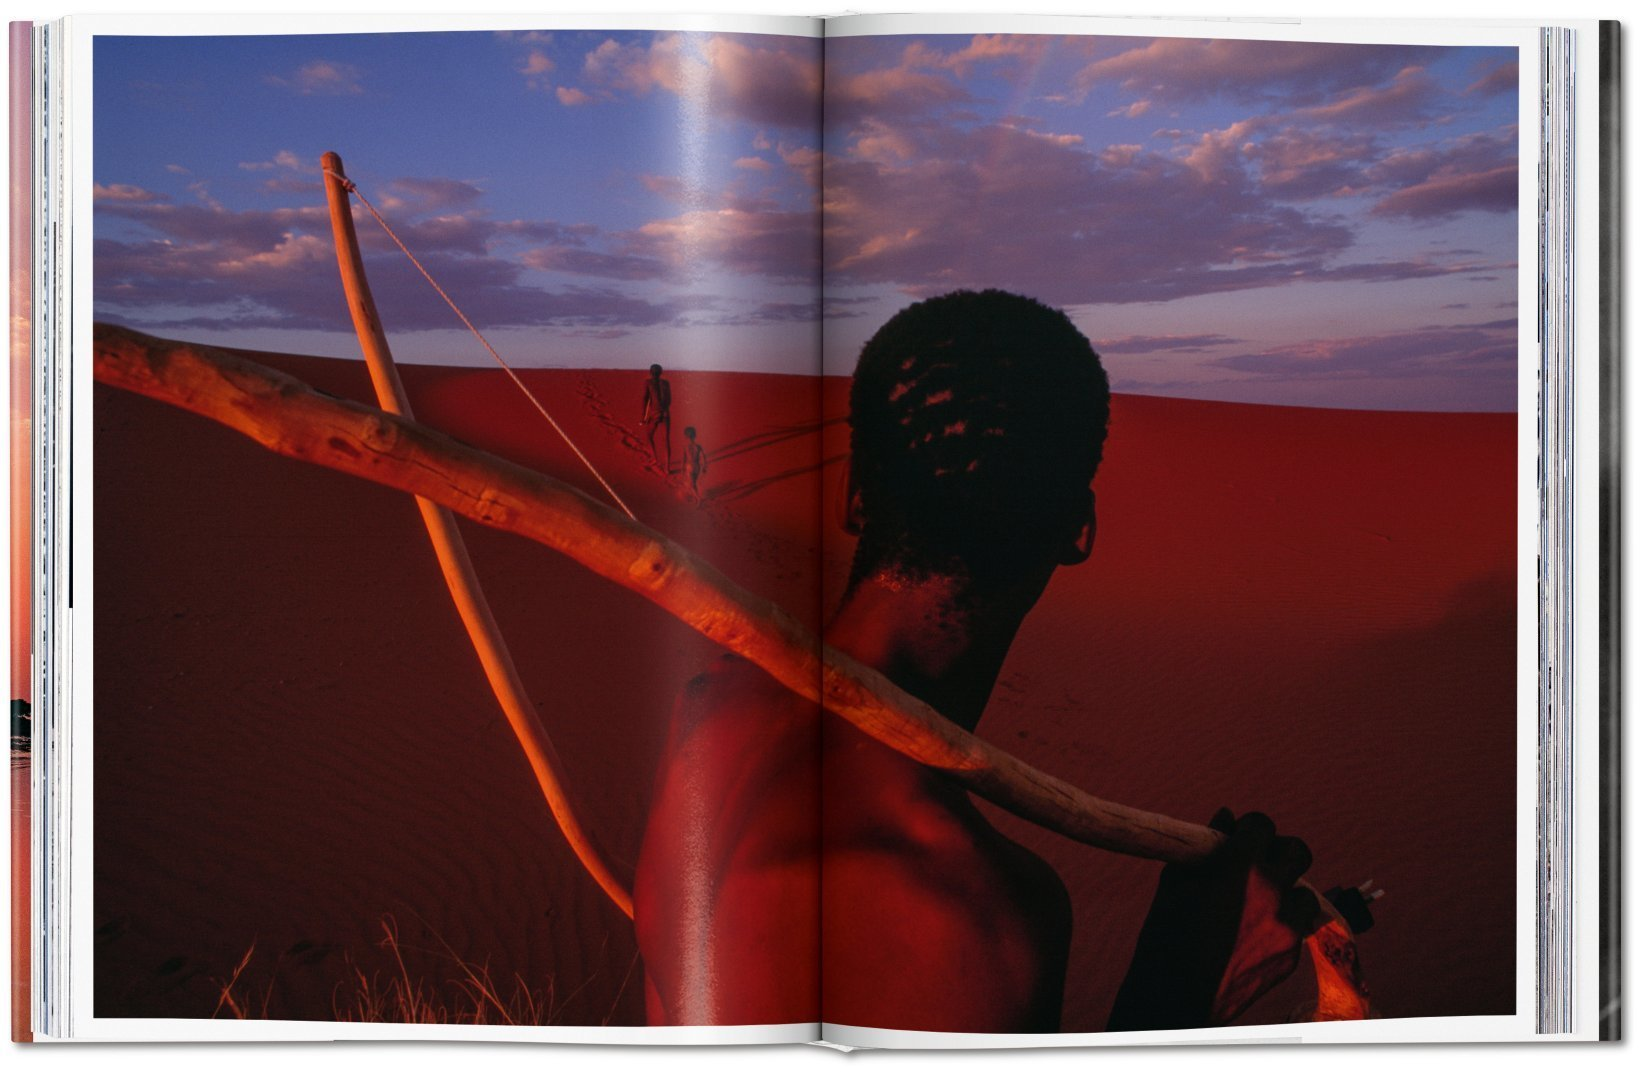 © Minden Pictures - Chris Johns, South Africa, 1995